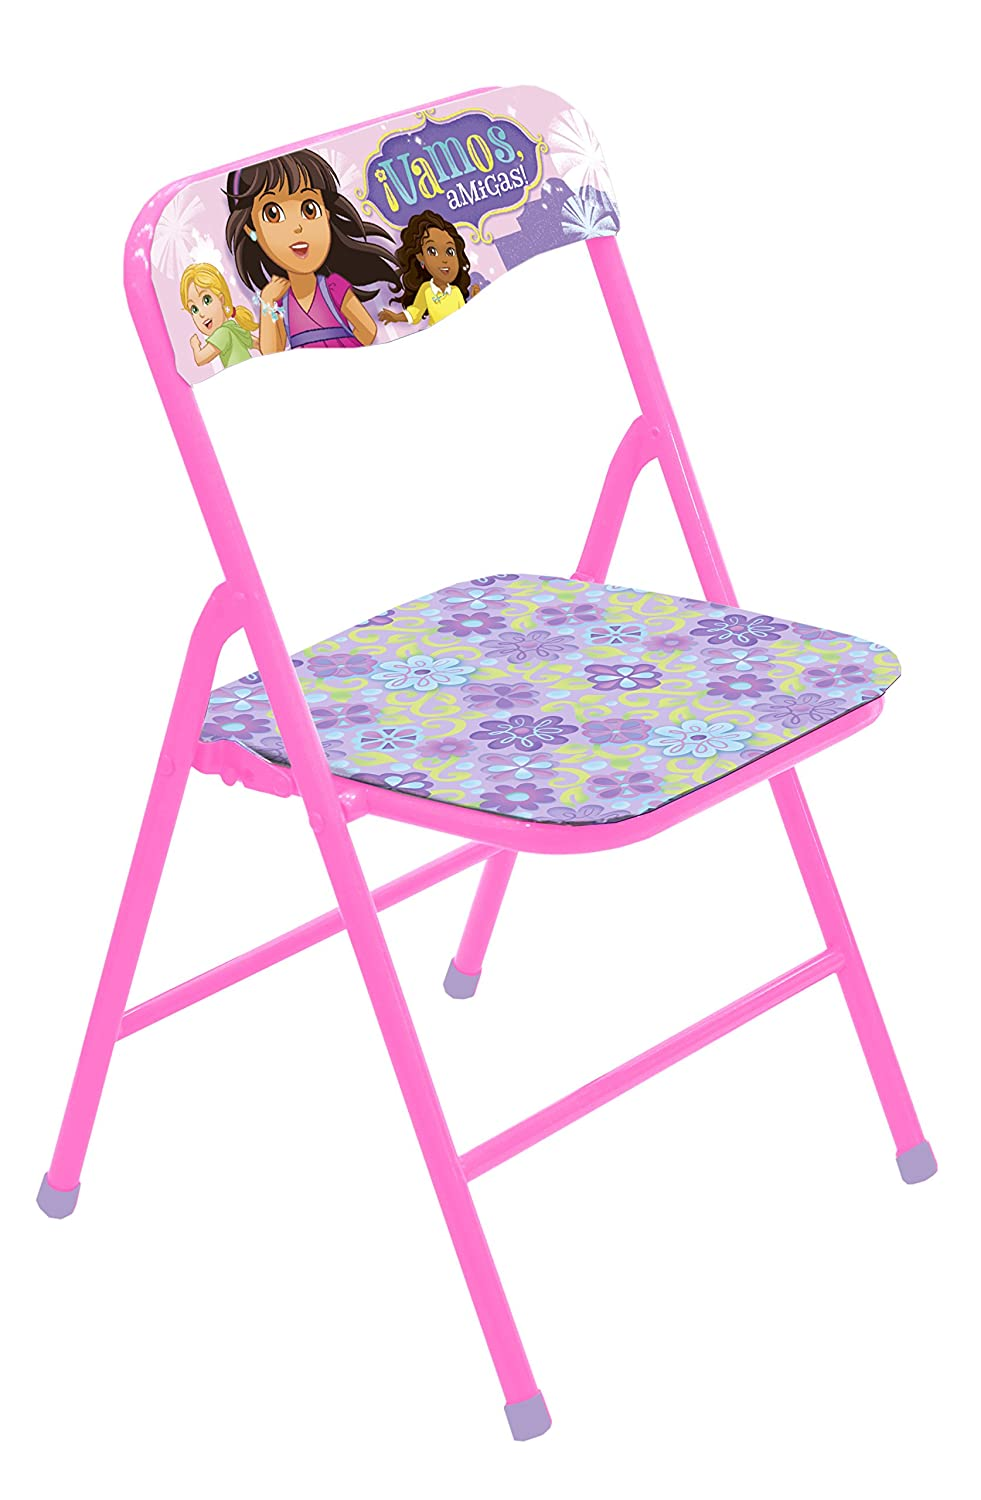 Scintillating Dora Table And Chair Set Gallery - Best Image Engine ...